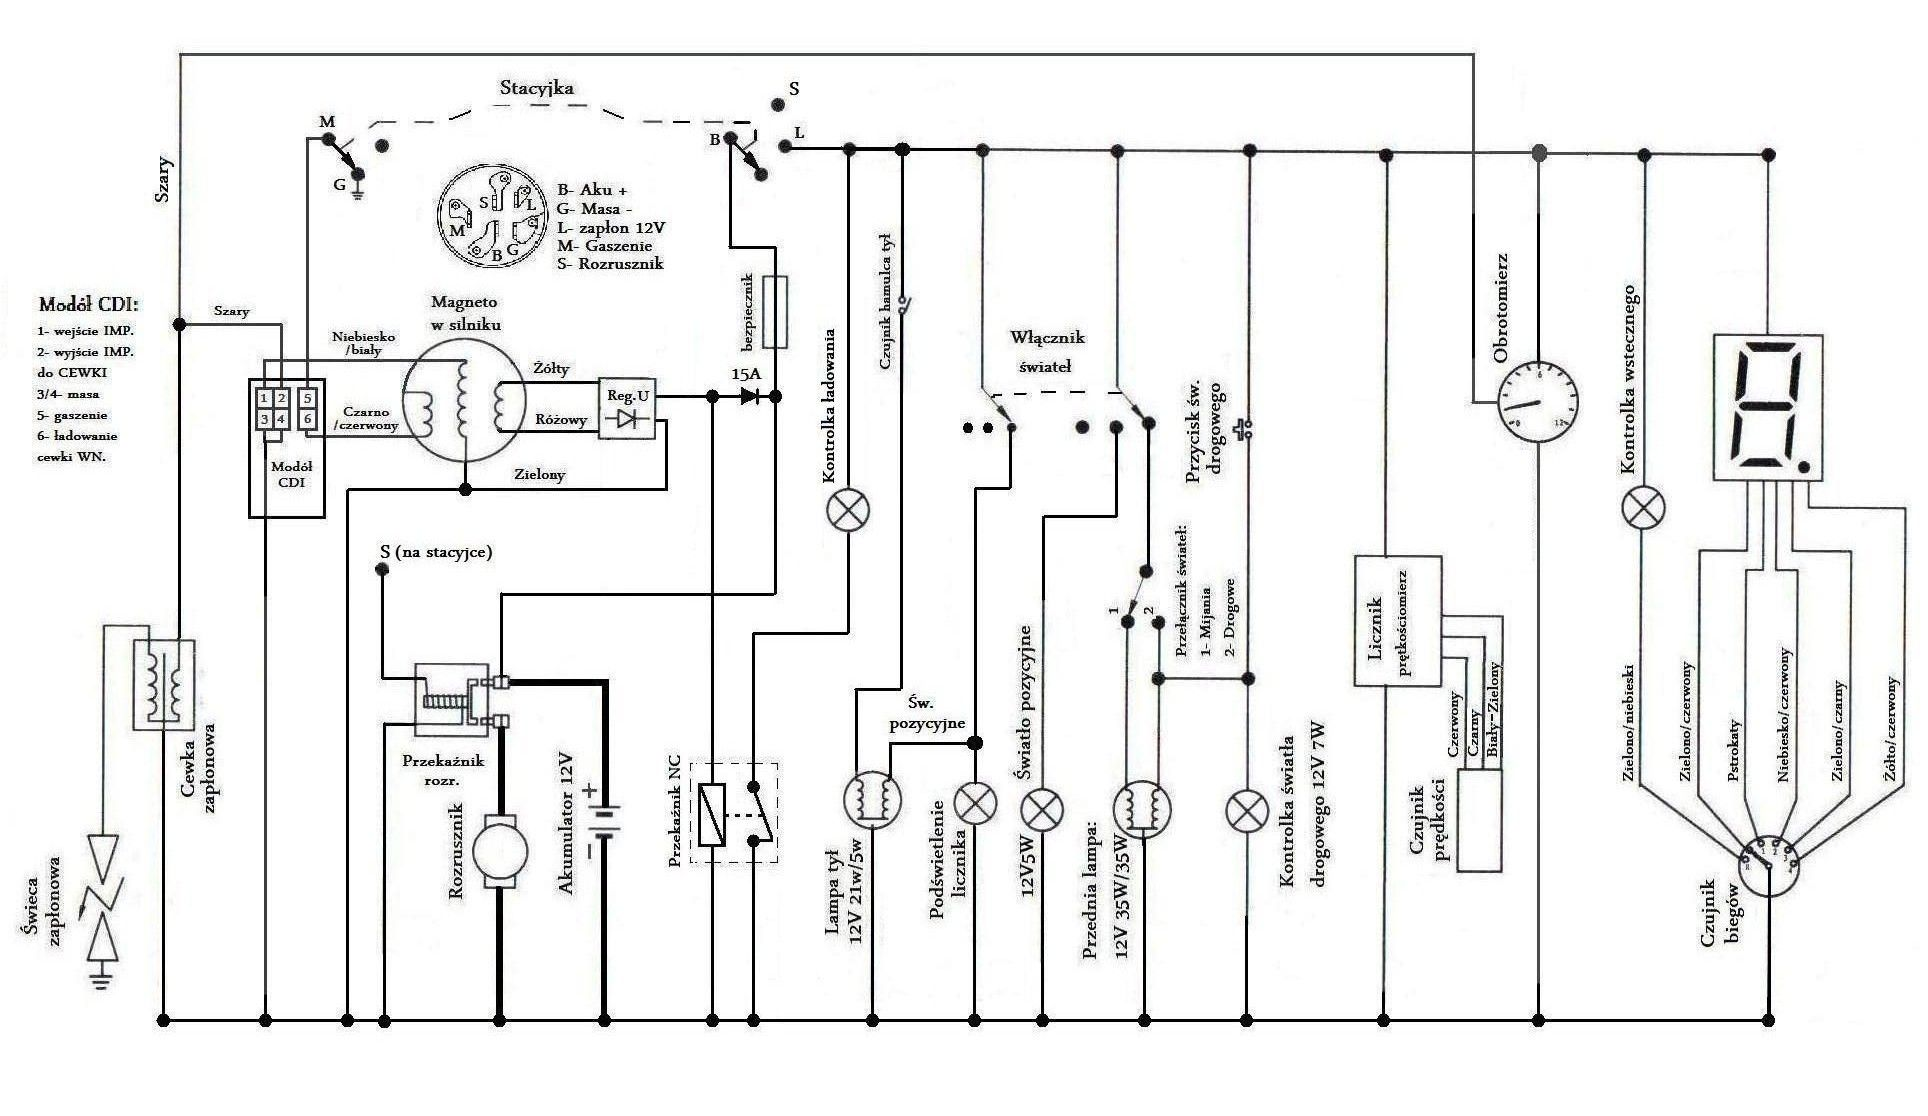 Chinese Gy6 50cc Vacuum Diagram furthermore 1987 Honda 125 Fourtrax Wiring Diagram also Engine Diagram For 139qmb likewise Engine Parts Exploded View furthermore Chain Care And Adjustments ep 65 1. on gy6 engine exploded diagram